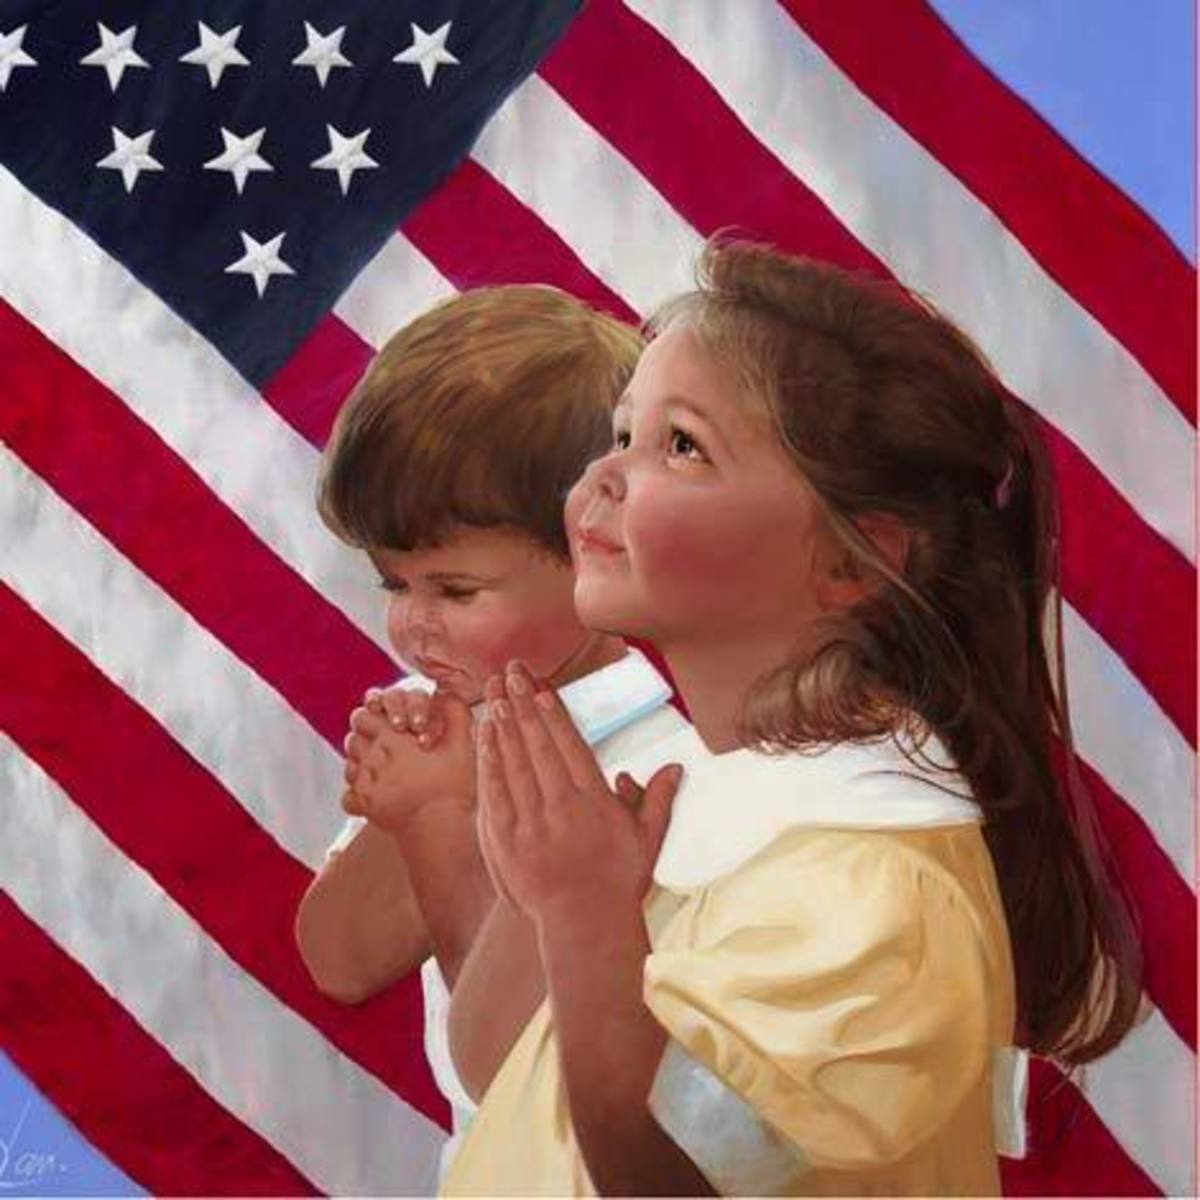 School Prayer and the Separation of Church and State: The Conflict That Keeps On Giving